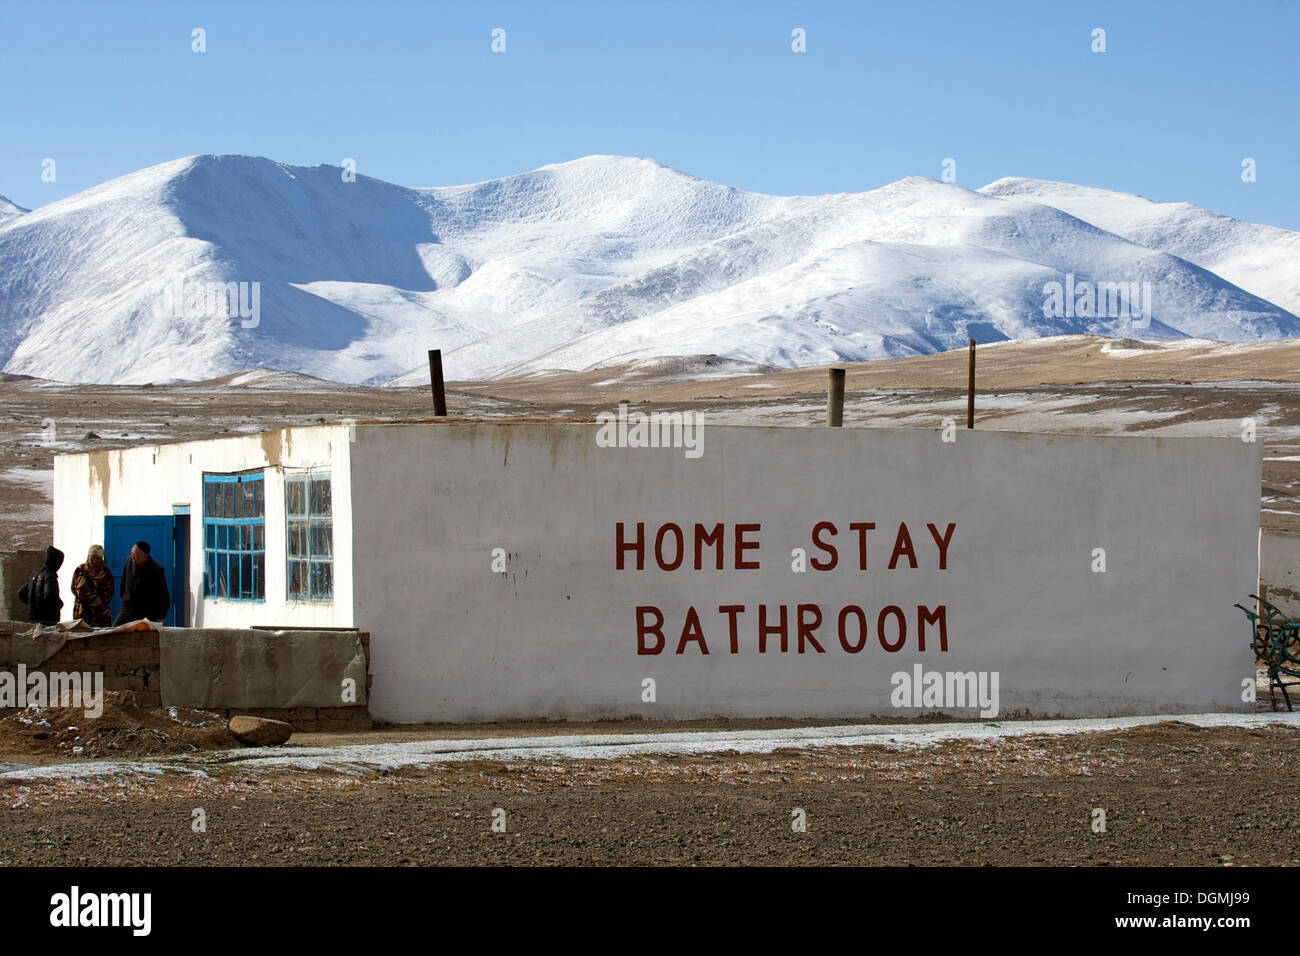 Overnight stay at a private family in Alichur on the Pamir Highway M41, Pamir, Tajikistan, Central Asia, Asia - Stock Image